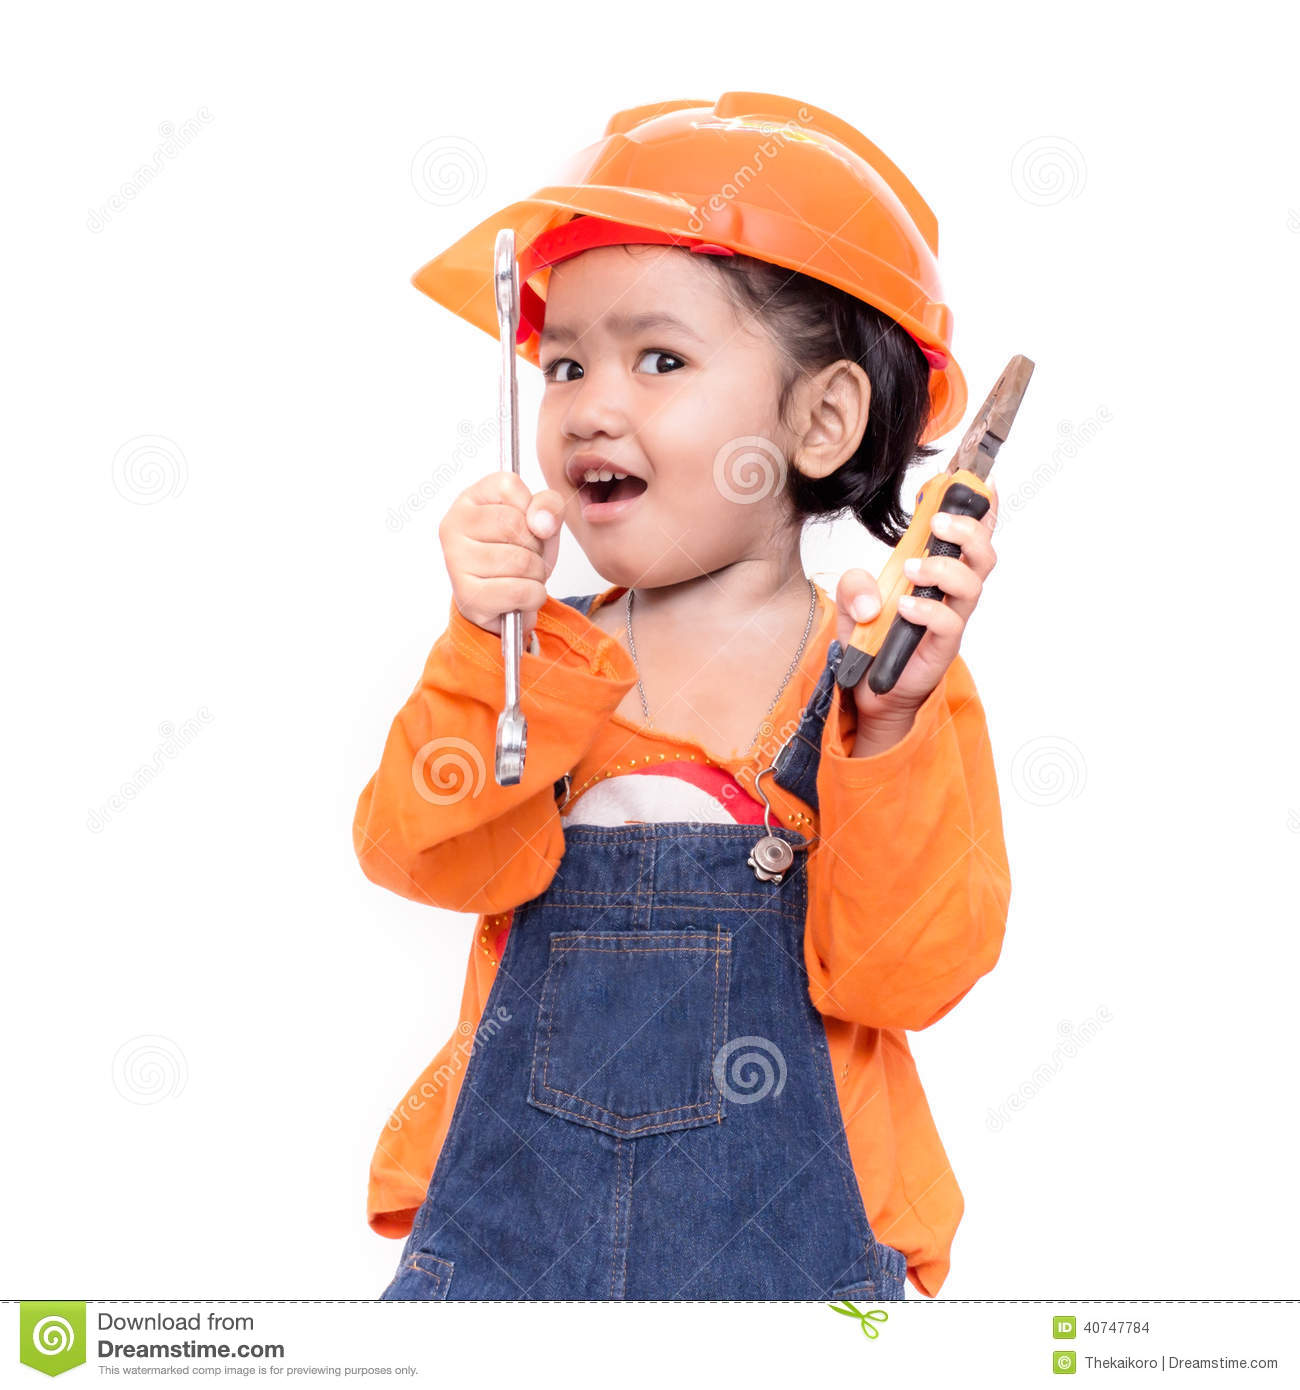 33a809e7c8a Asian Engineer Baby With Tools In Hand Stock Photo - Image of dreams ...